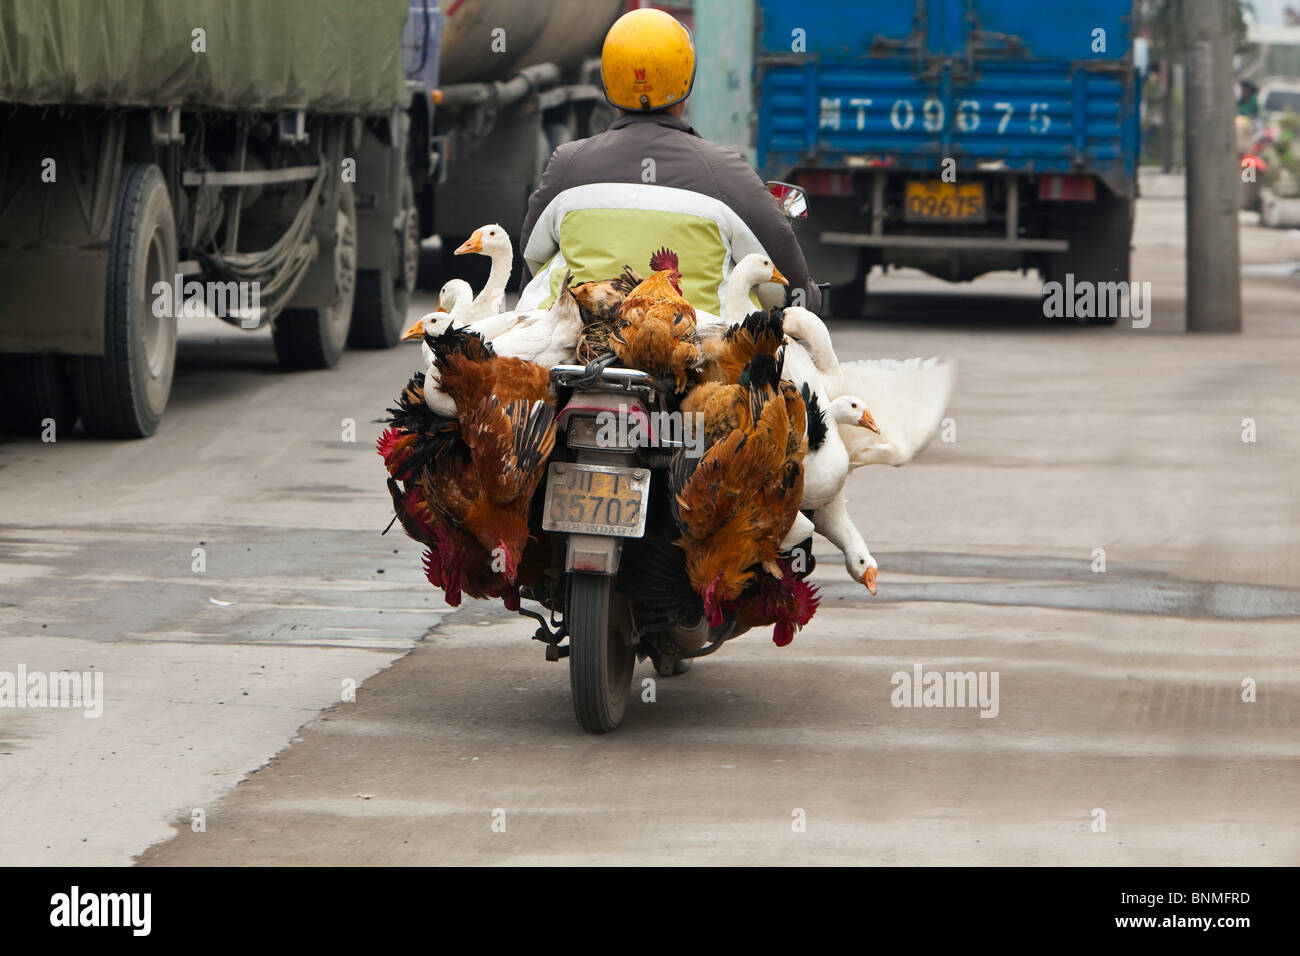 A poultry vendor on a bike in China - Stock Image